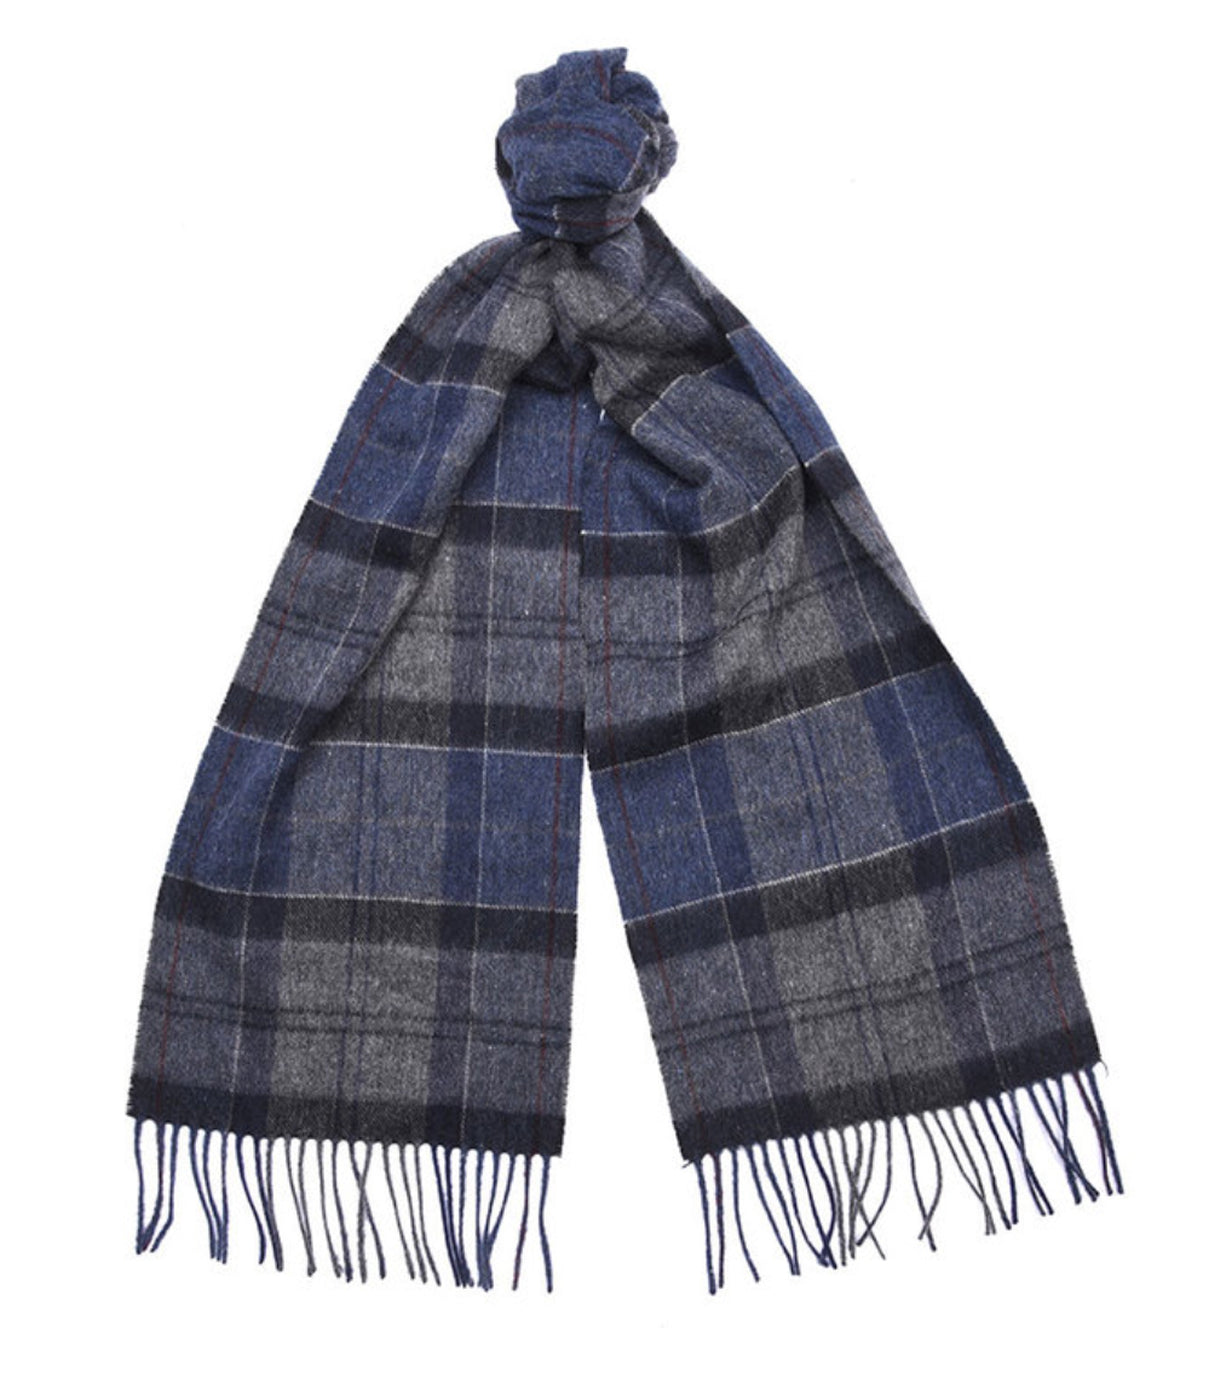 Barbour Tartan Scarf Navy/Grey - North Shore Saddlery